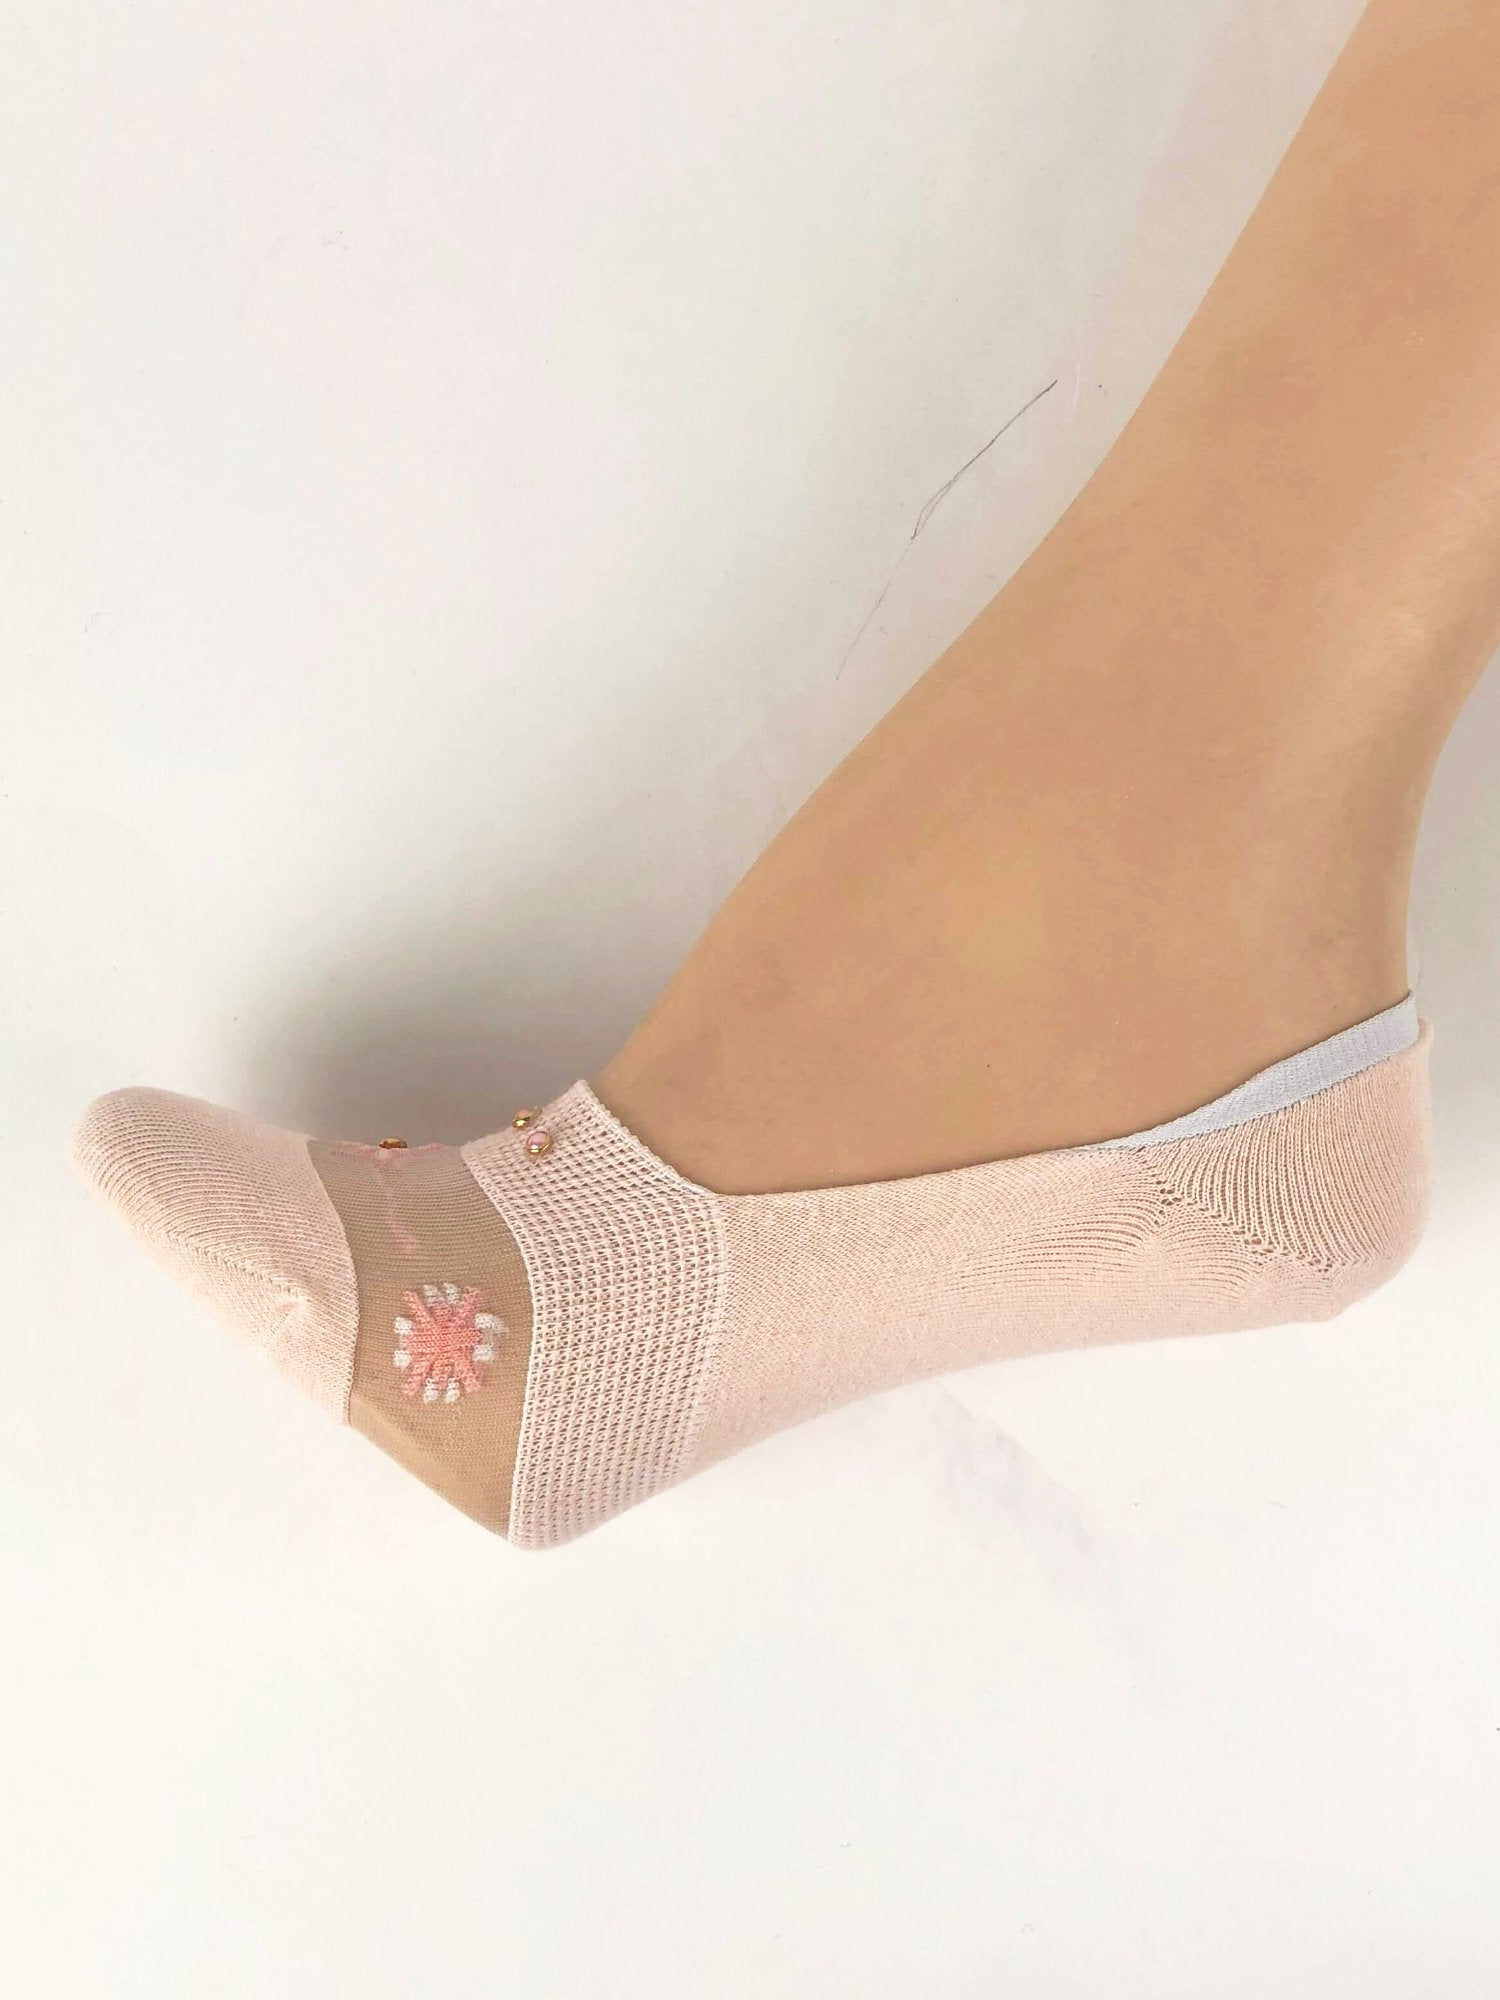 Pearled Baby Pink Ankle Sheer Socks - Global Trendz Fashion®